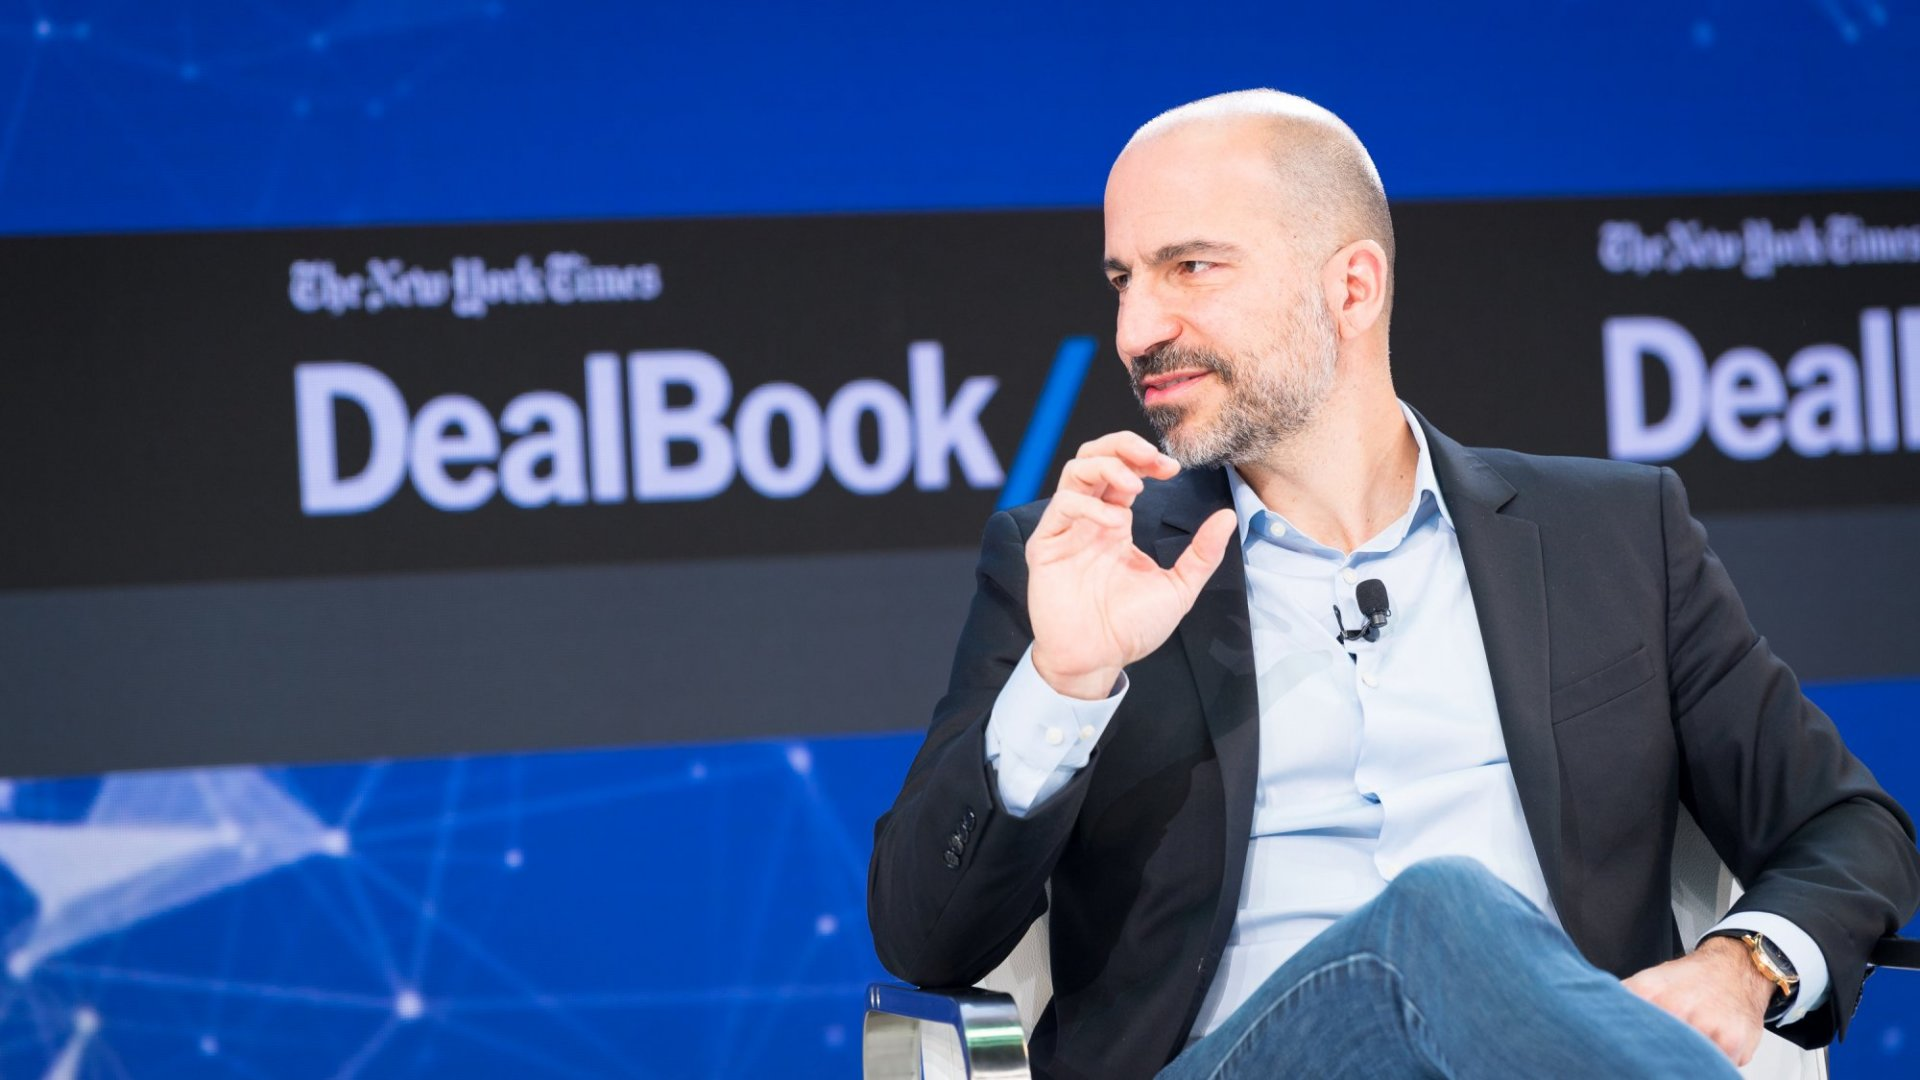 How Uber CEO Dara Khosrowshahi Is the Exact Opposite of Uber Founder Travis Kalanick